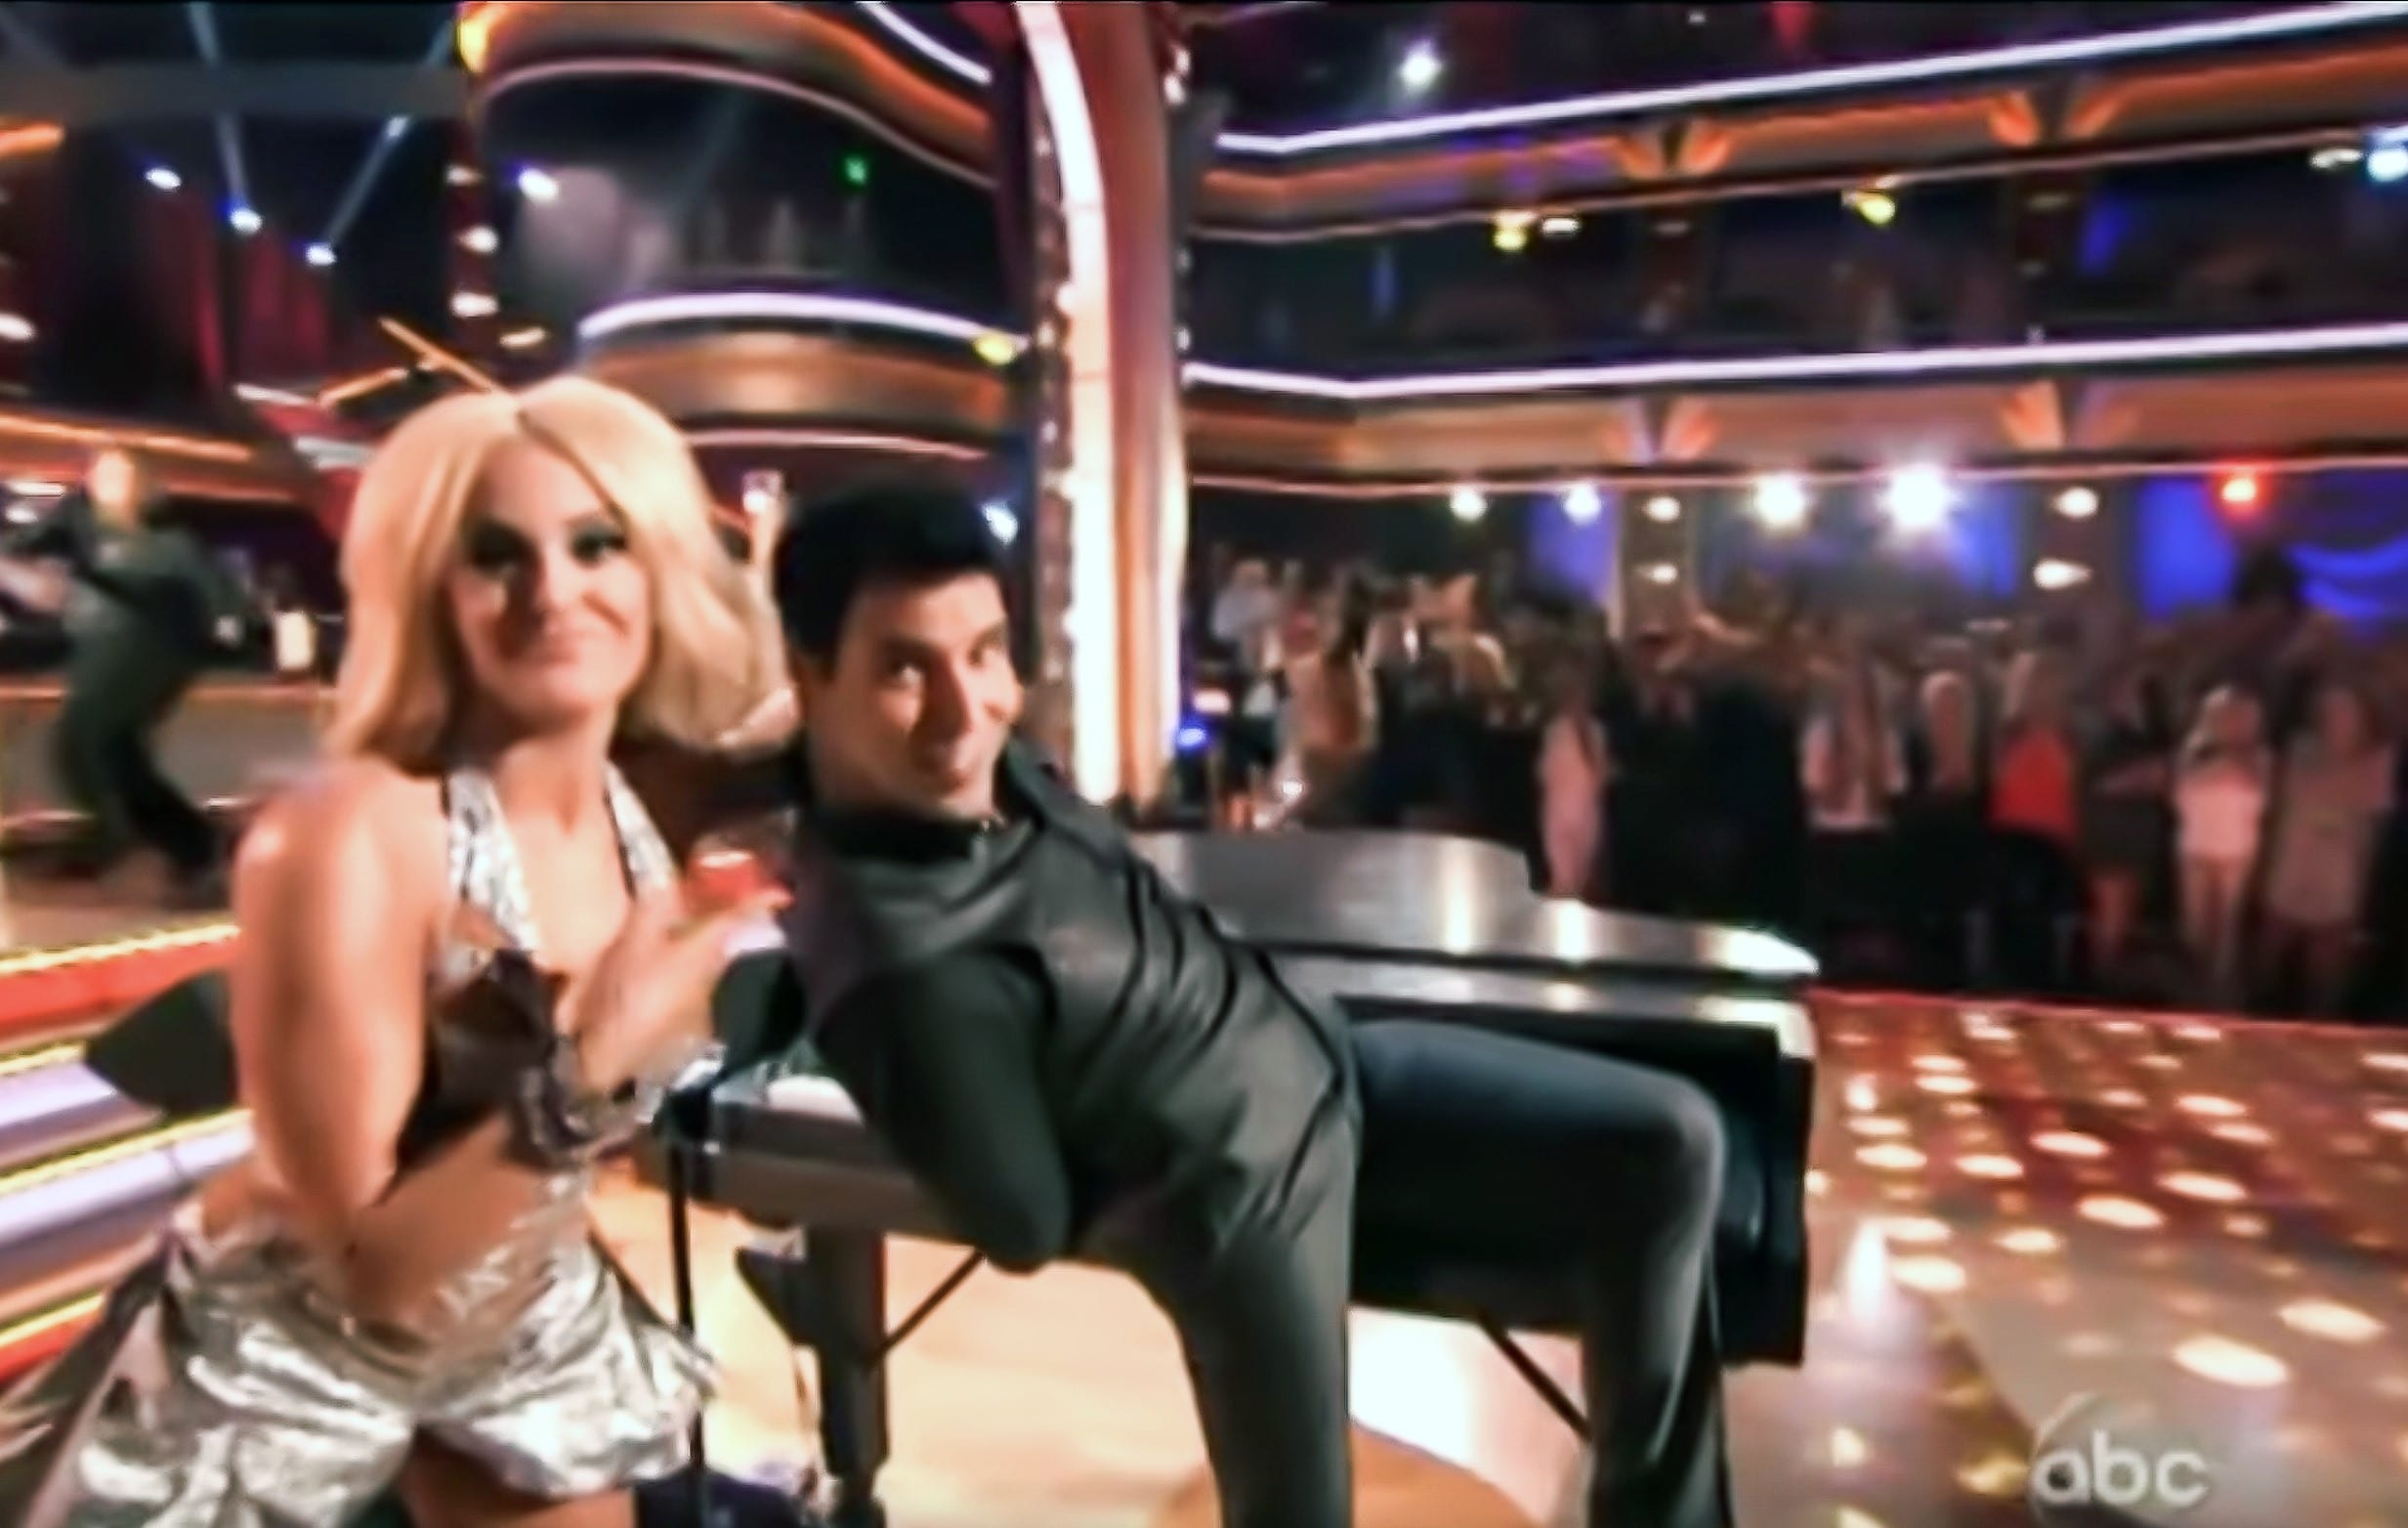 FRANKIE PERFORMS ON ABC's DANCING WITH THE STARS